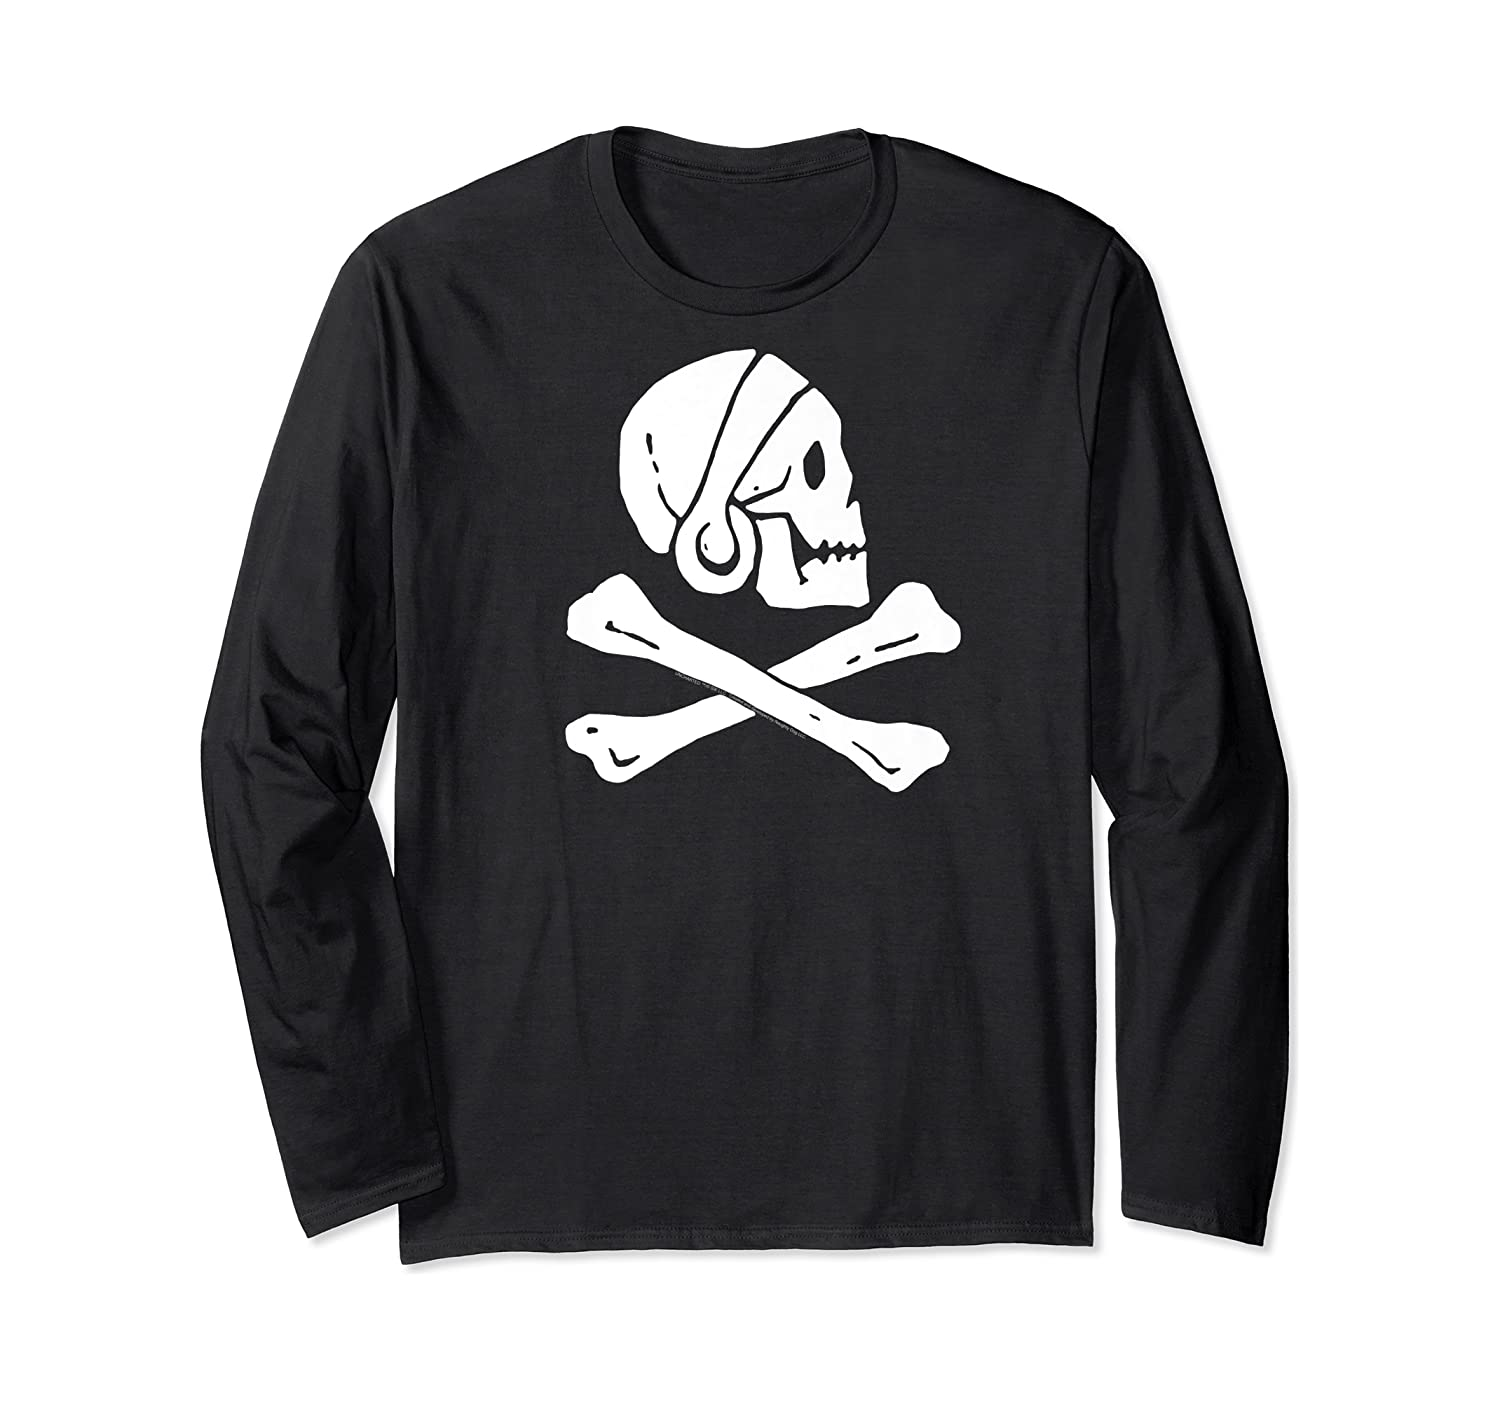 Uncharted Henry Avery Pirate Flag Shirt Long Sleeve T-shirt